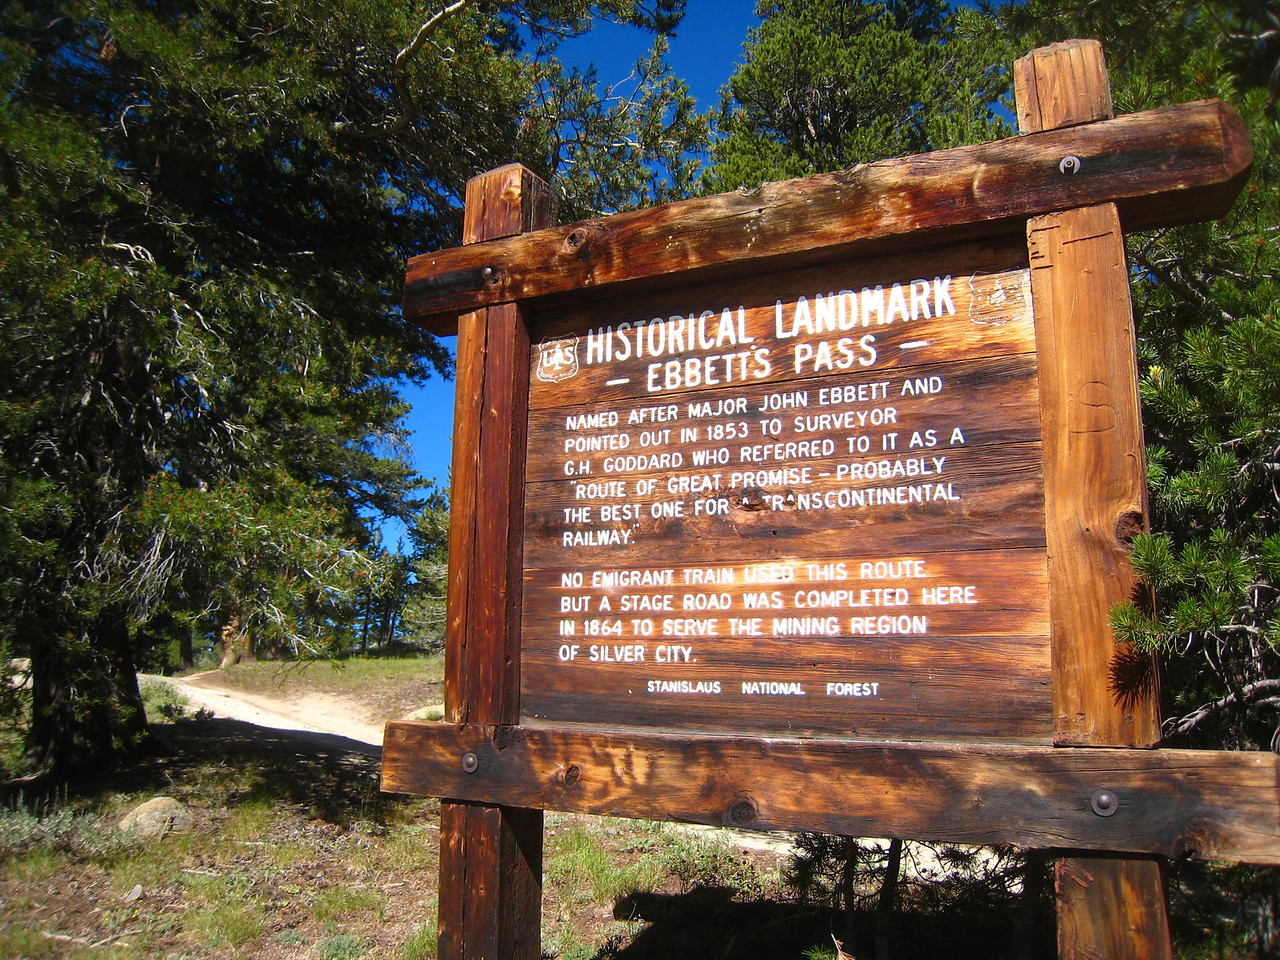 Leaving Markleeville, we head over Ebbett's pass.  This sign is posted at the summit.